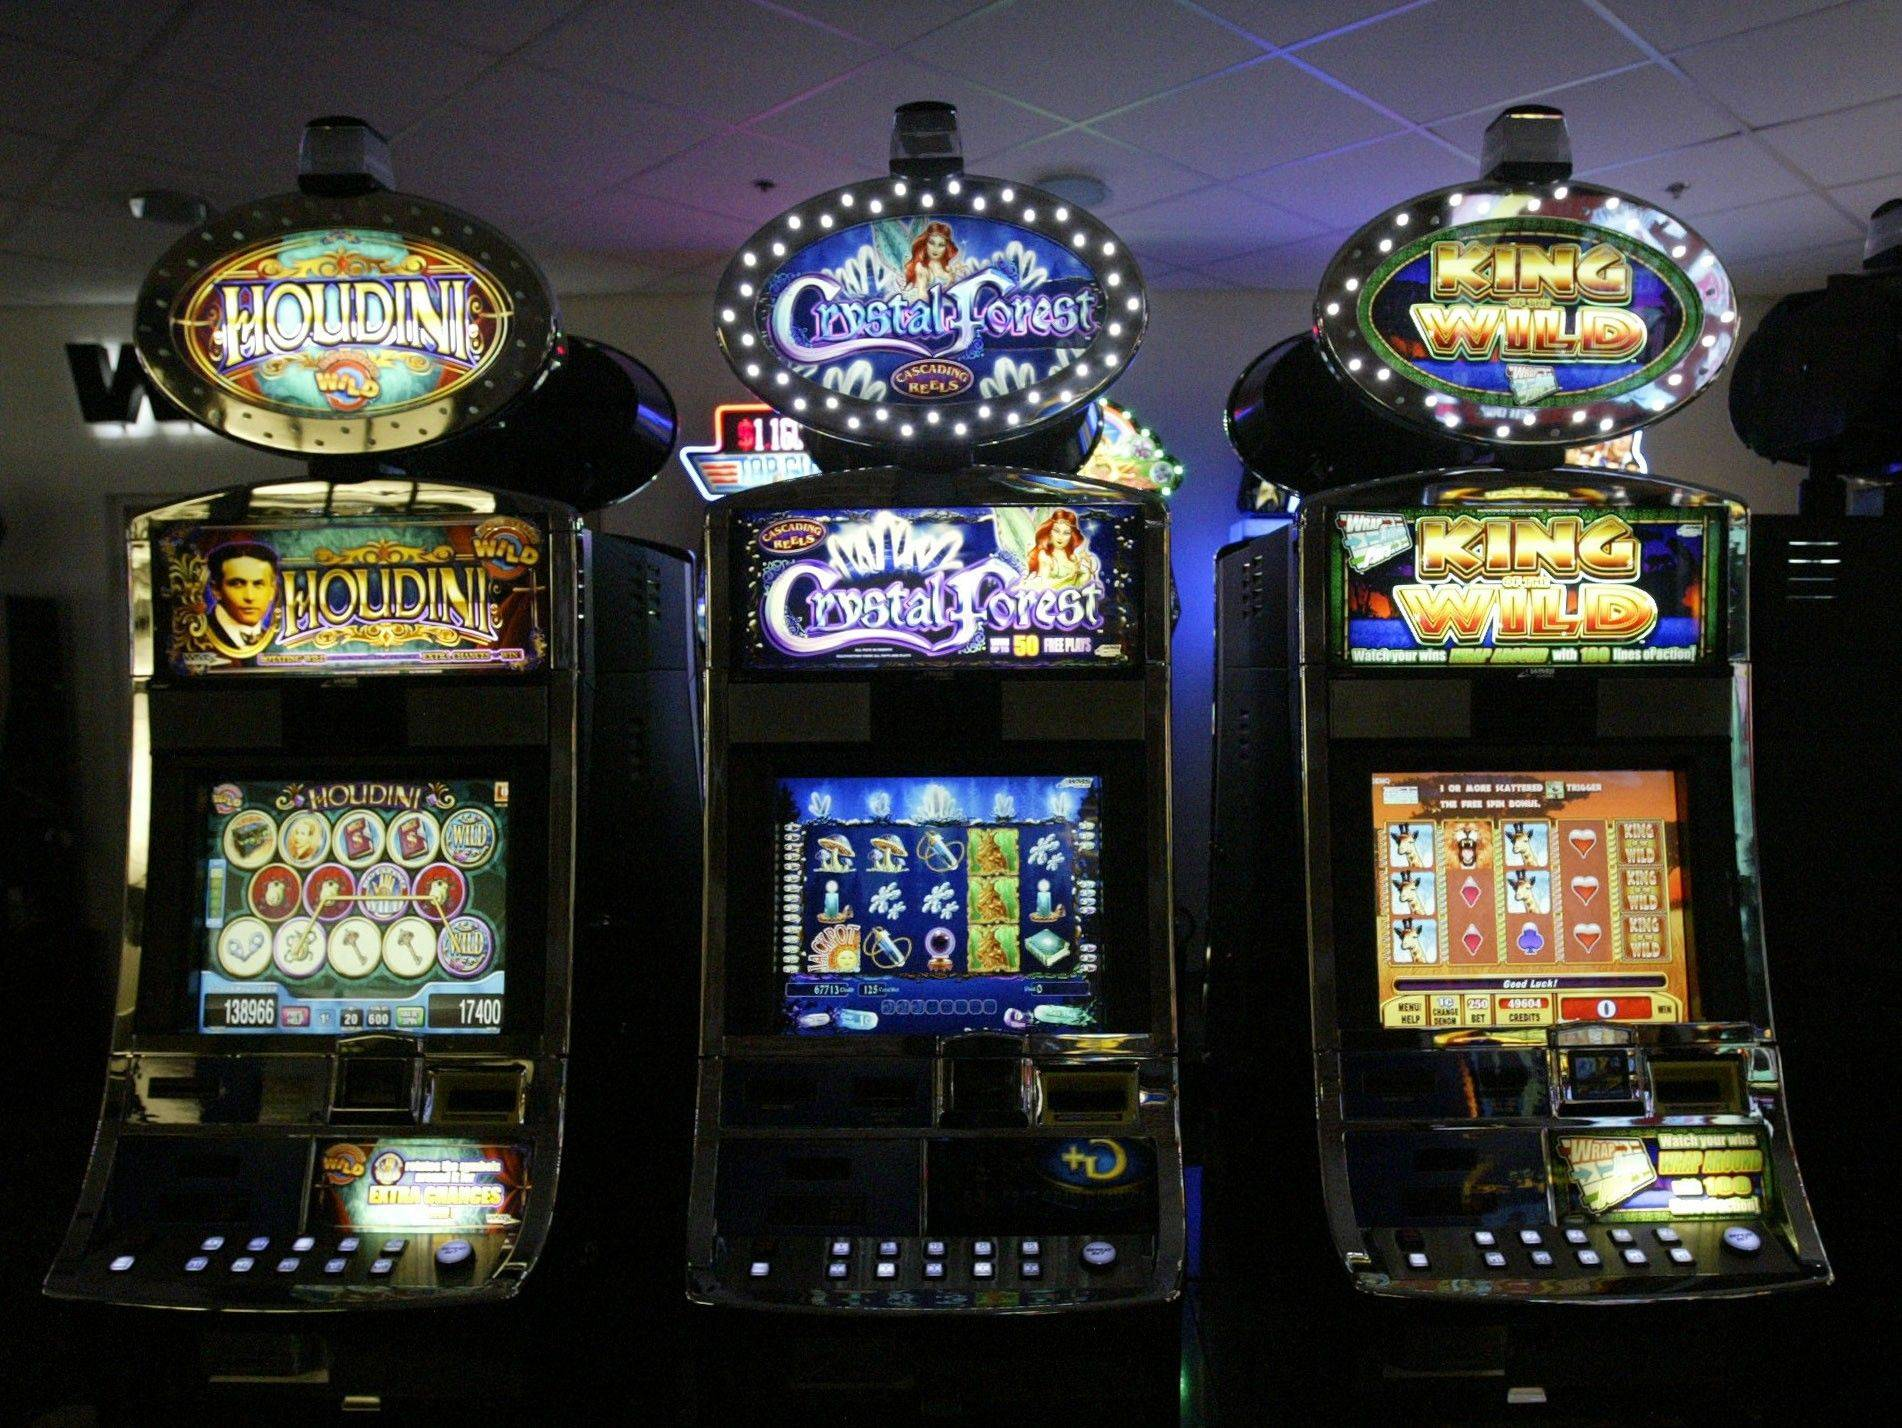 Slot machines like those at WMS in Chicago could be coming to Arlington Park, under a new proposal that would allow a massive expansion of gambling in Illinois.